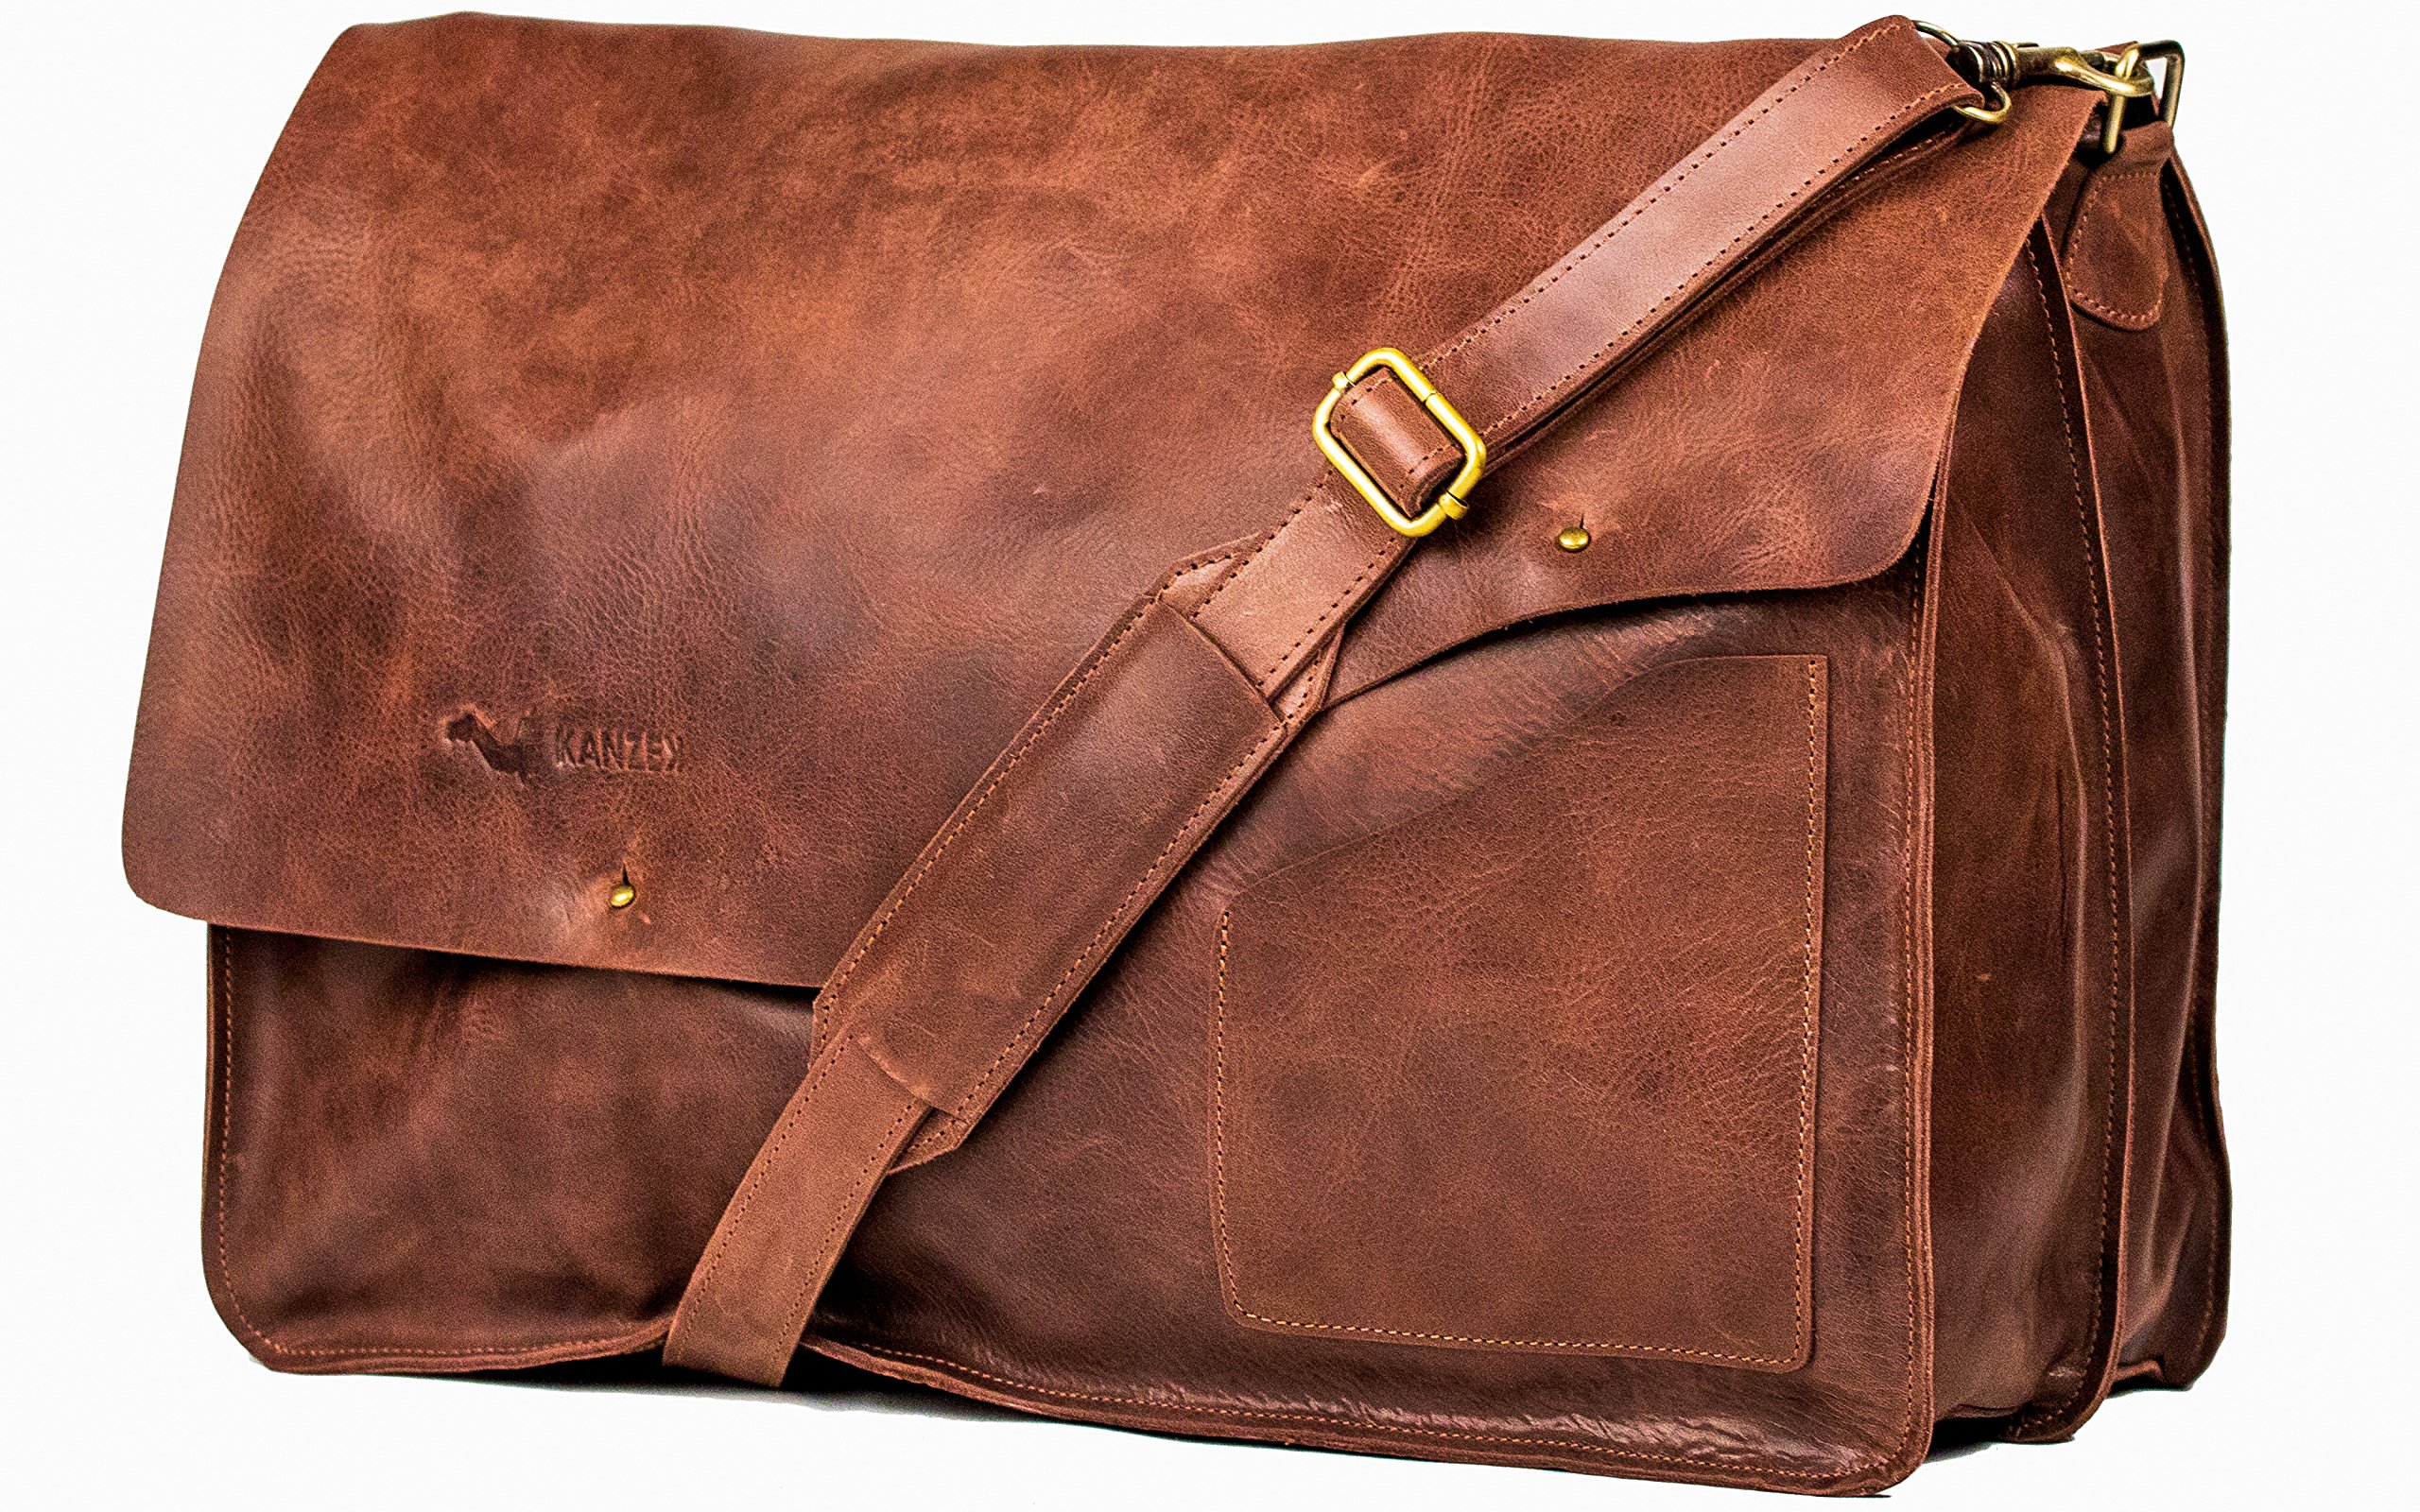 KANZEK Distressed Leather Messenger Bag/Satchel for 18'' Laptops in Vintage Brown